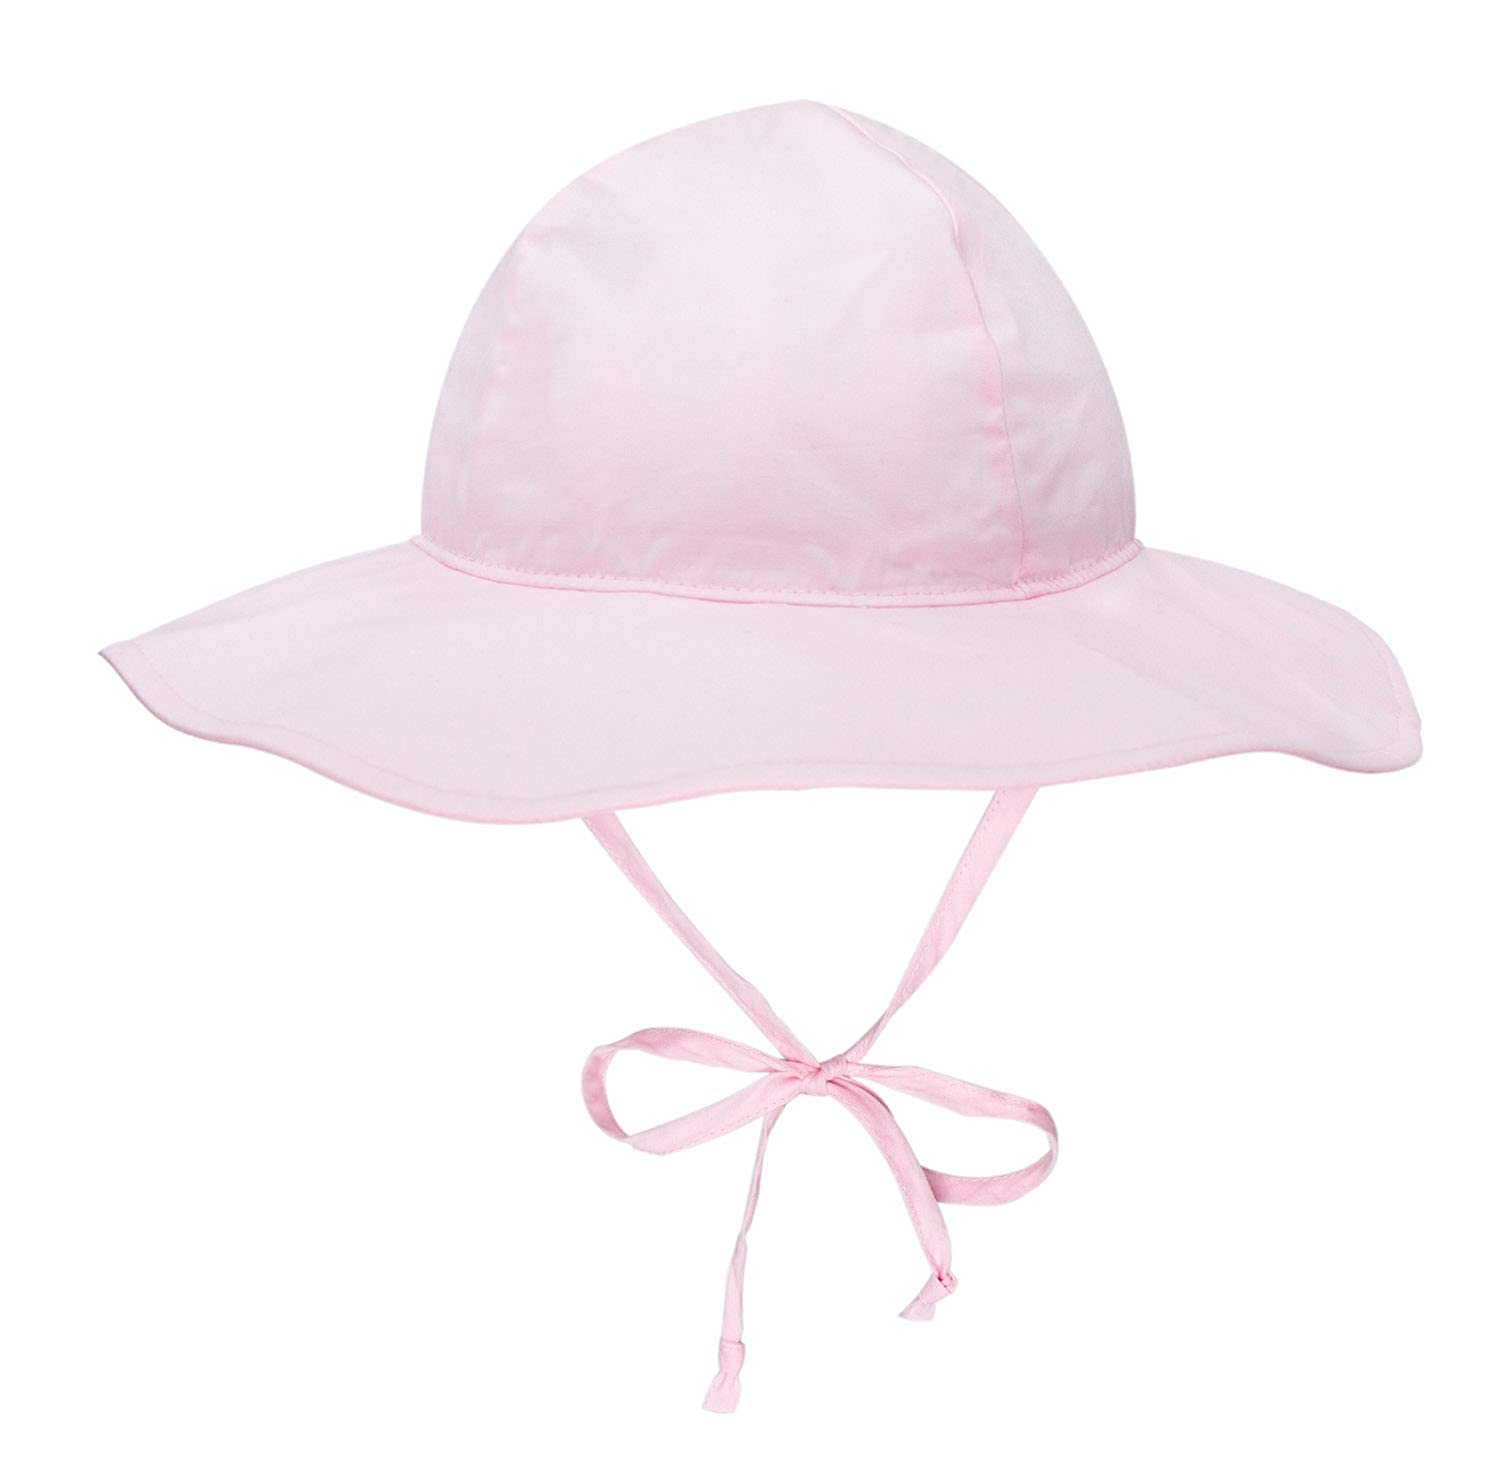 10 Colors BELLEBEAUTIE Baby Floppy Wide Brim Sun Hat Breathable Cotton UPF 50 Protective UV Ray for Kids Protection